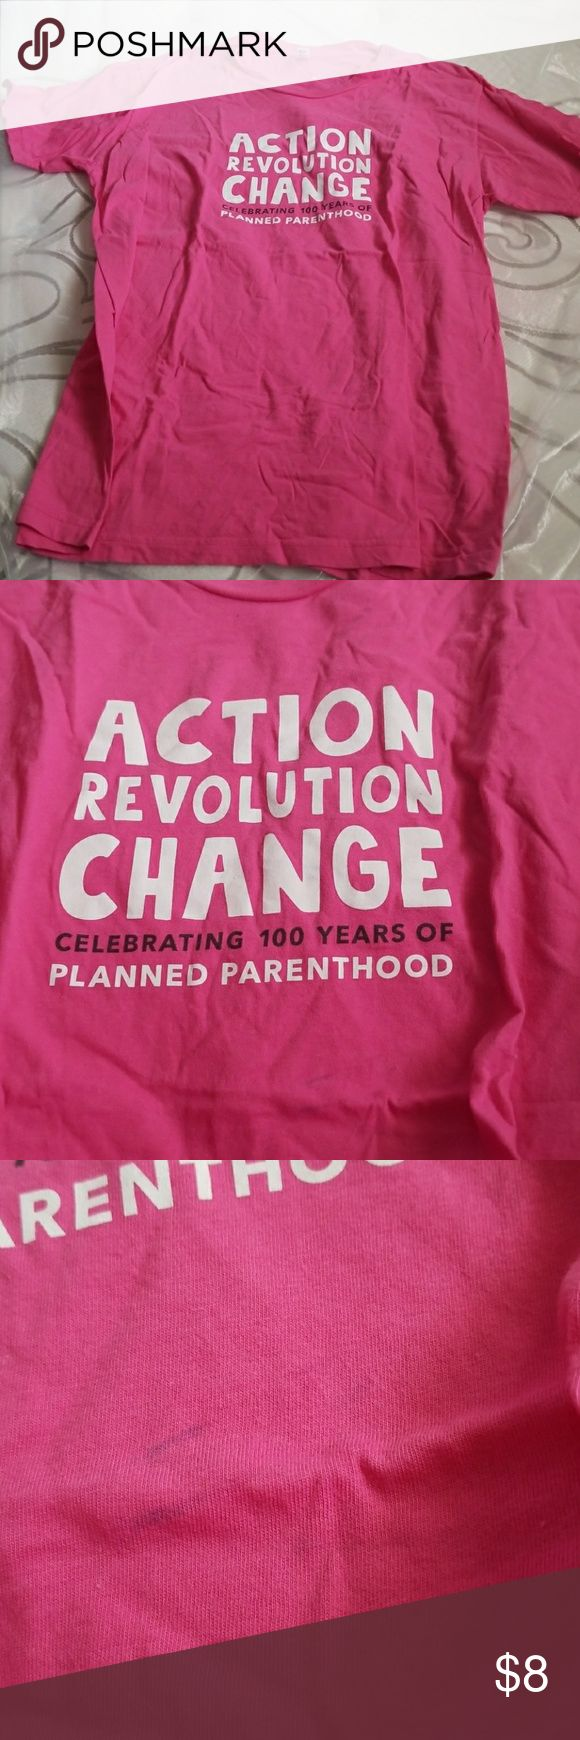 Planned parenthood t-shirt Size large Perfect as a t shirt dress, pajamas, etc or a shirt you can diy American Apparel Tops